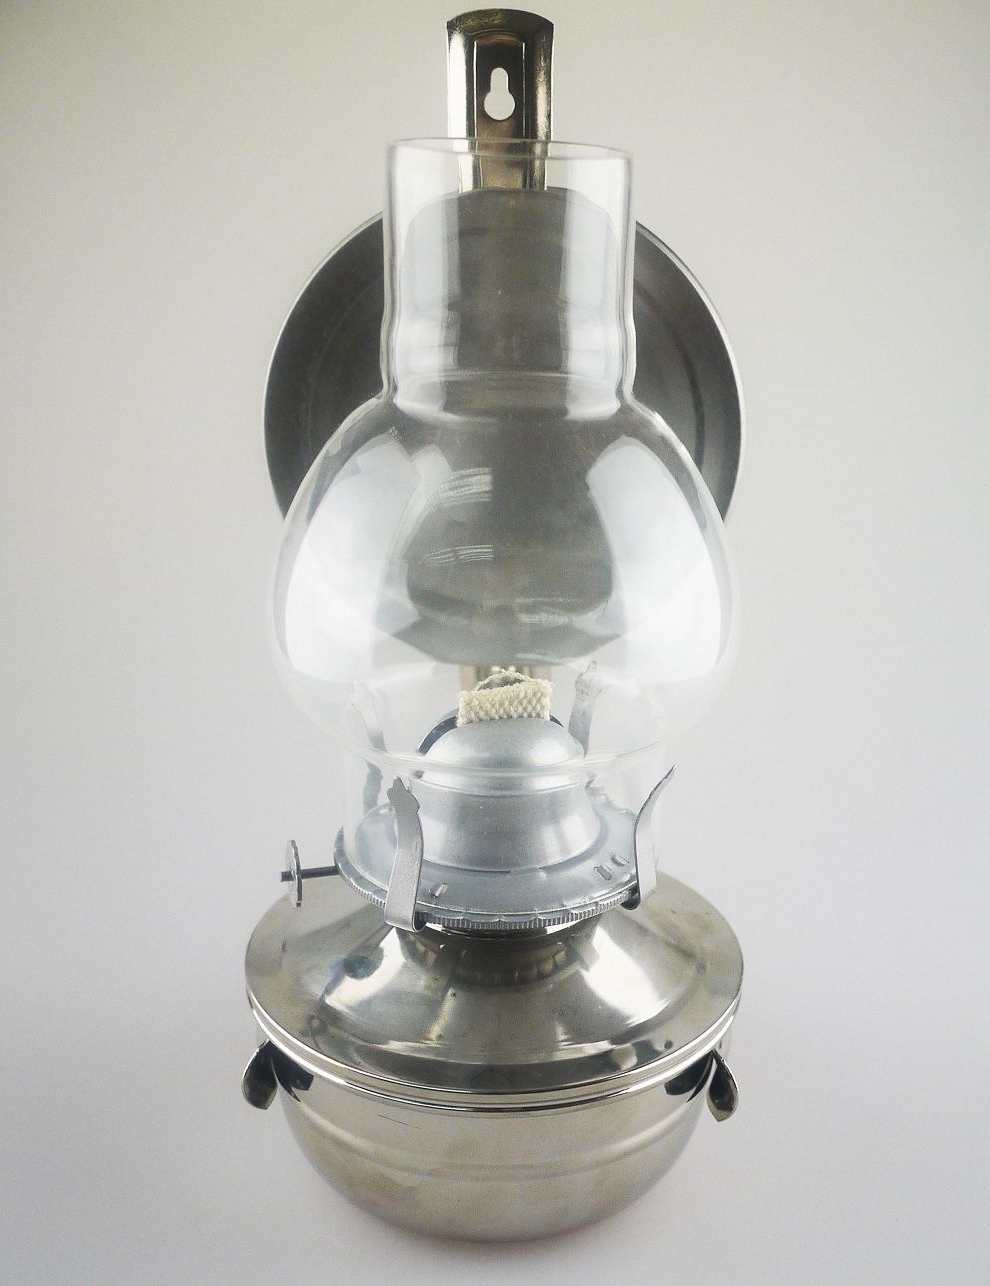 Free Shipping Purism Style Glass Outdoor Retro Lighting Torch For Favorite Outdoor Kerosene Lanterns (Gallery 5 of 20)